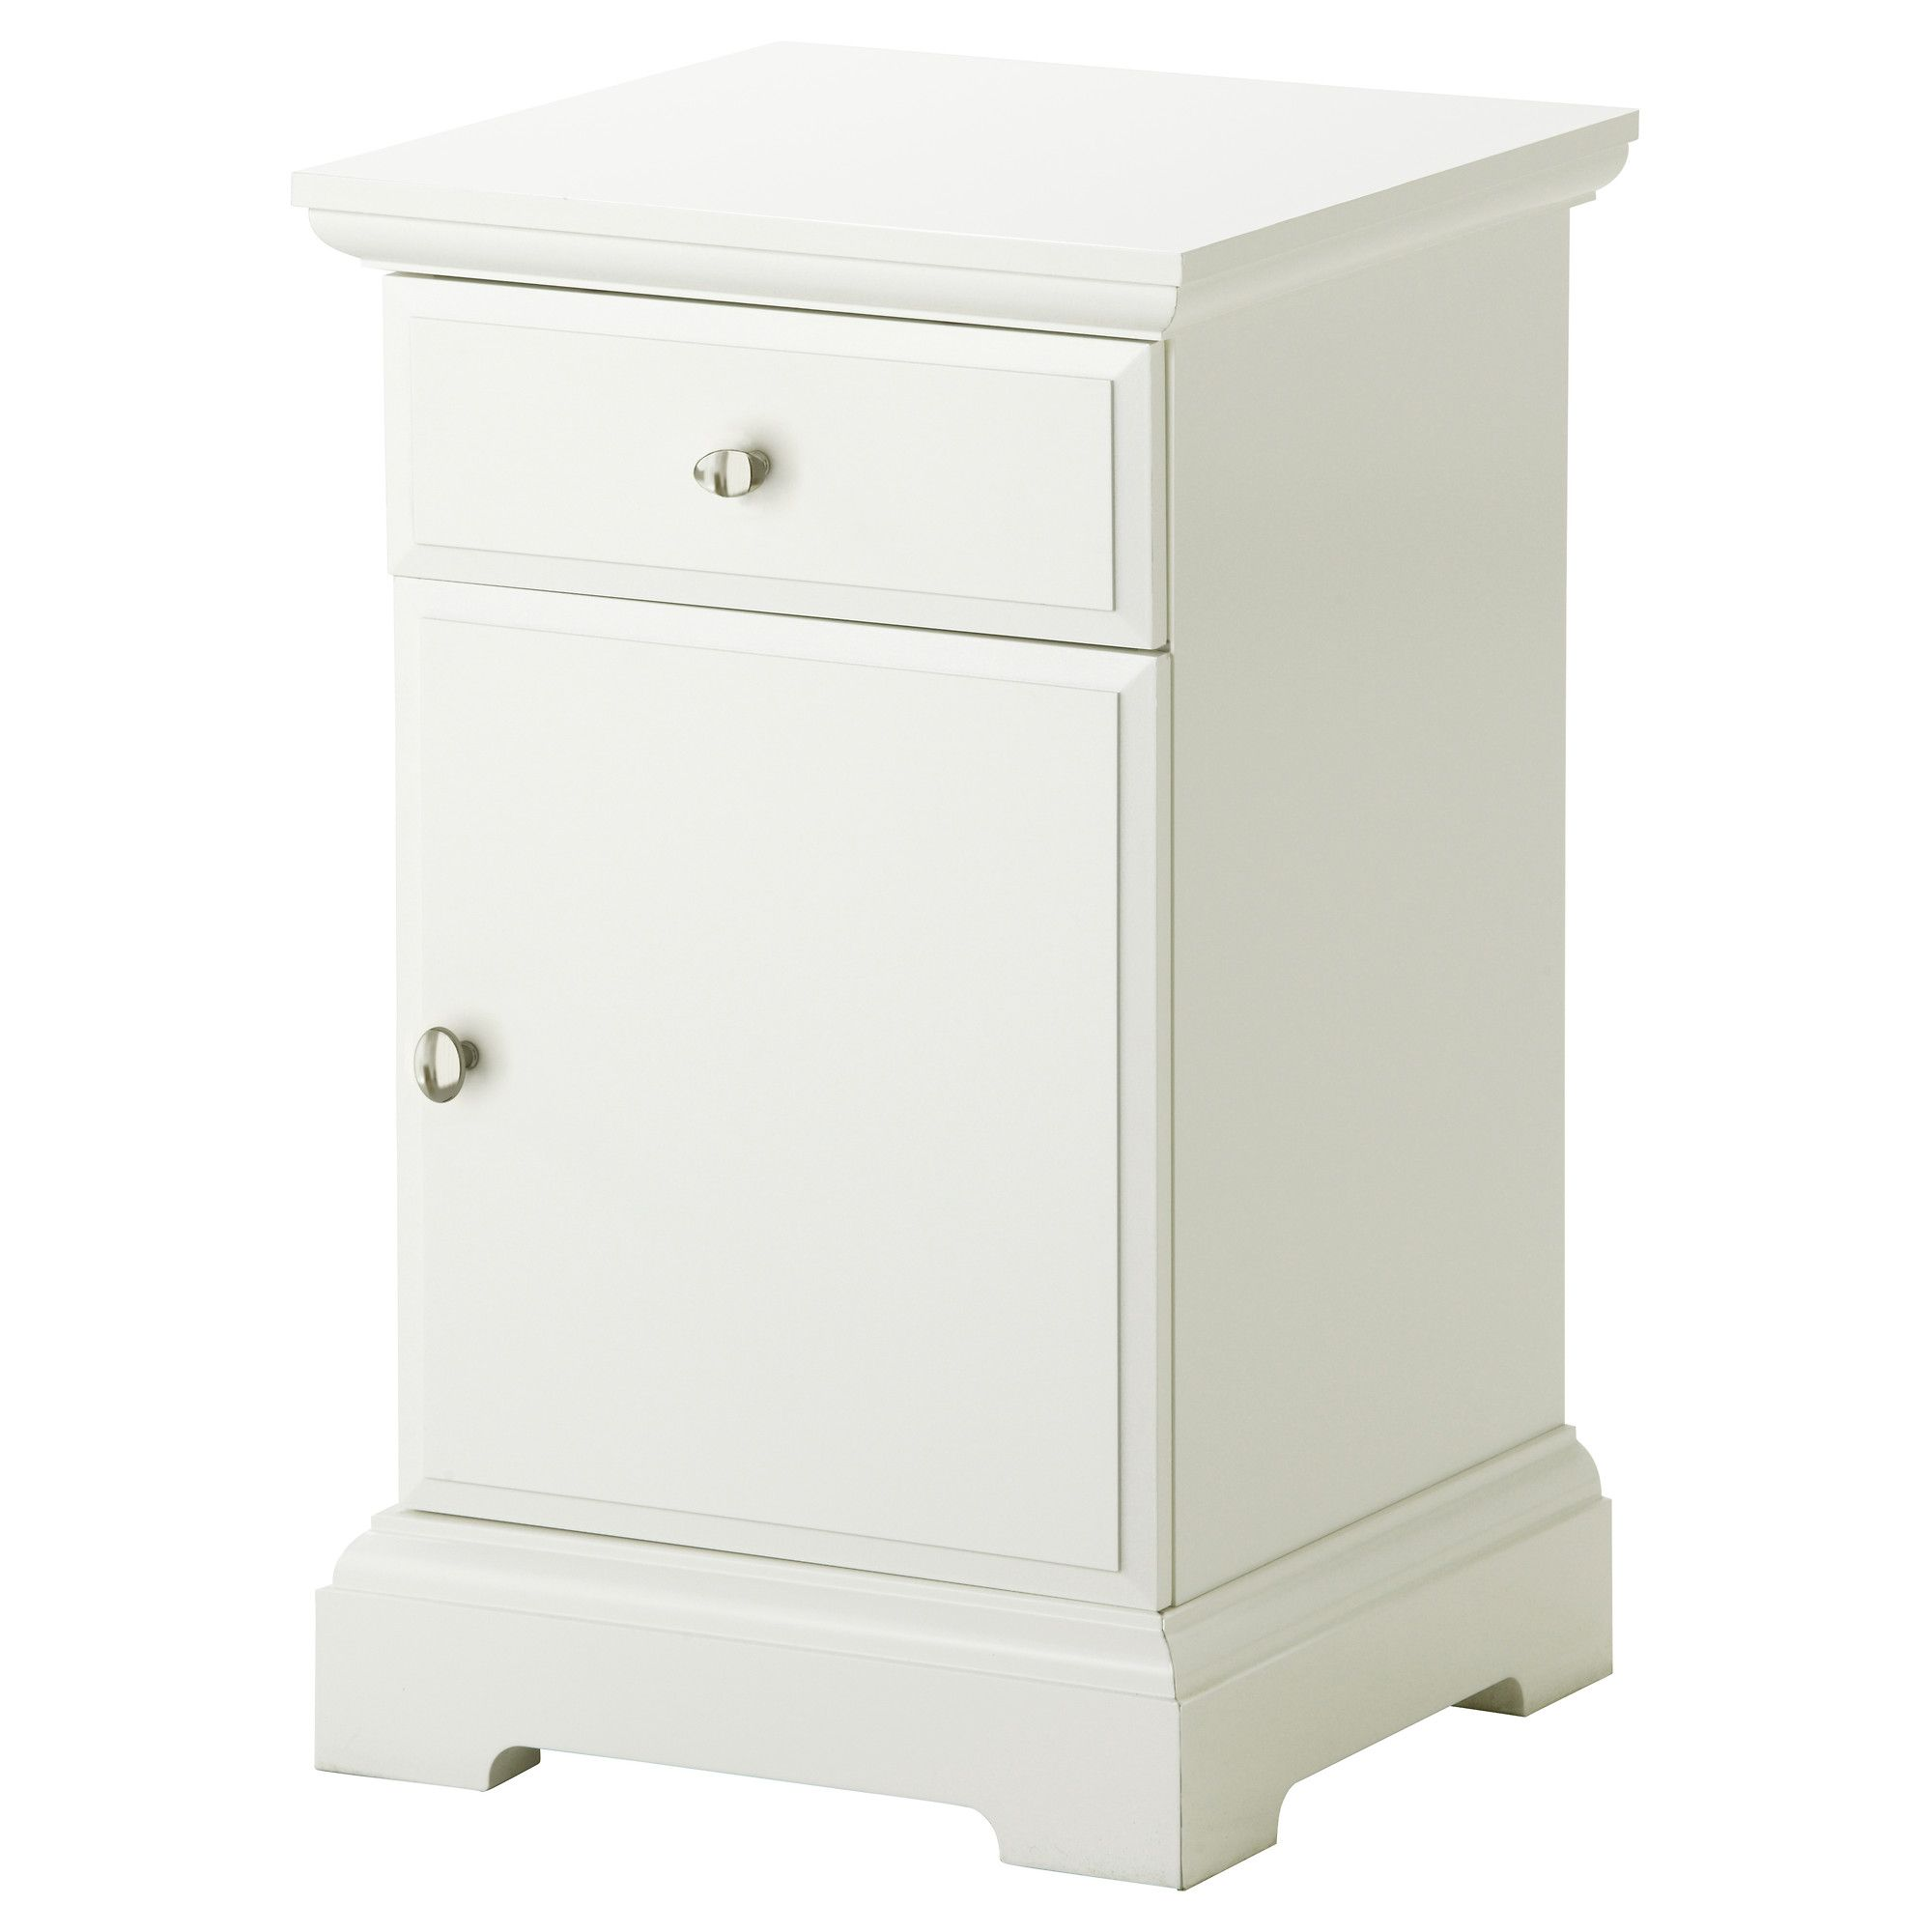 Muebles Birkeland Ikea - Birkeland Nightstand Ikea New Apartment Wish List Pinterest [mjhdah]https://i.ytimg.com/vi/U6i6G9ZWMEI/maxresdefault.jpg